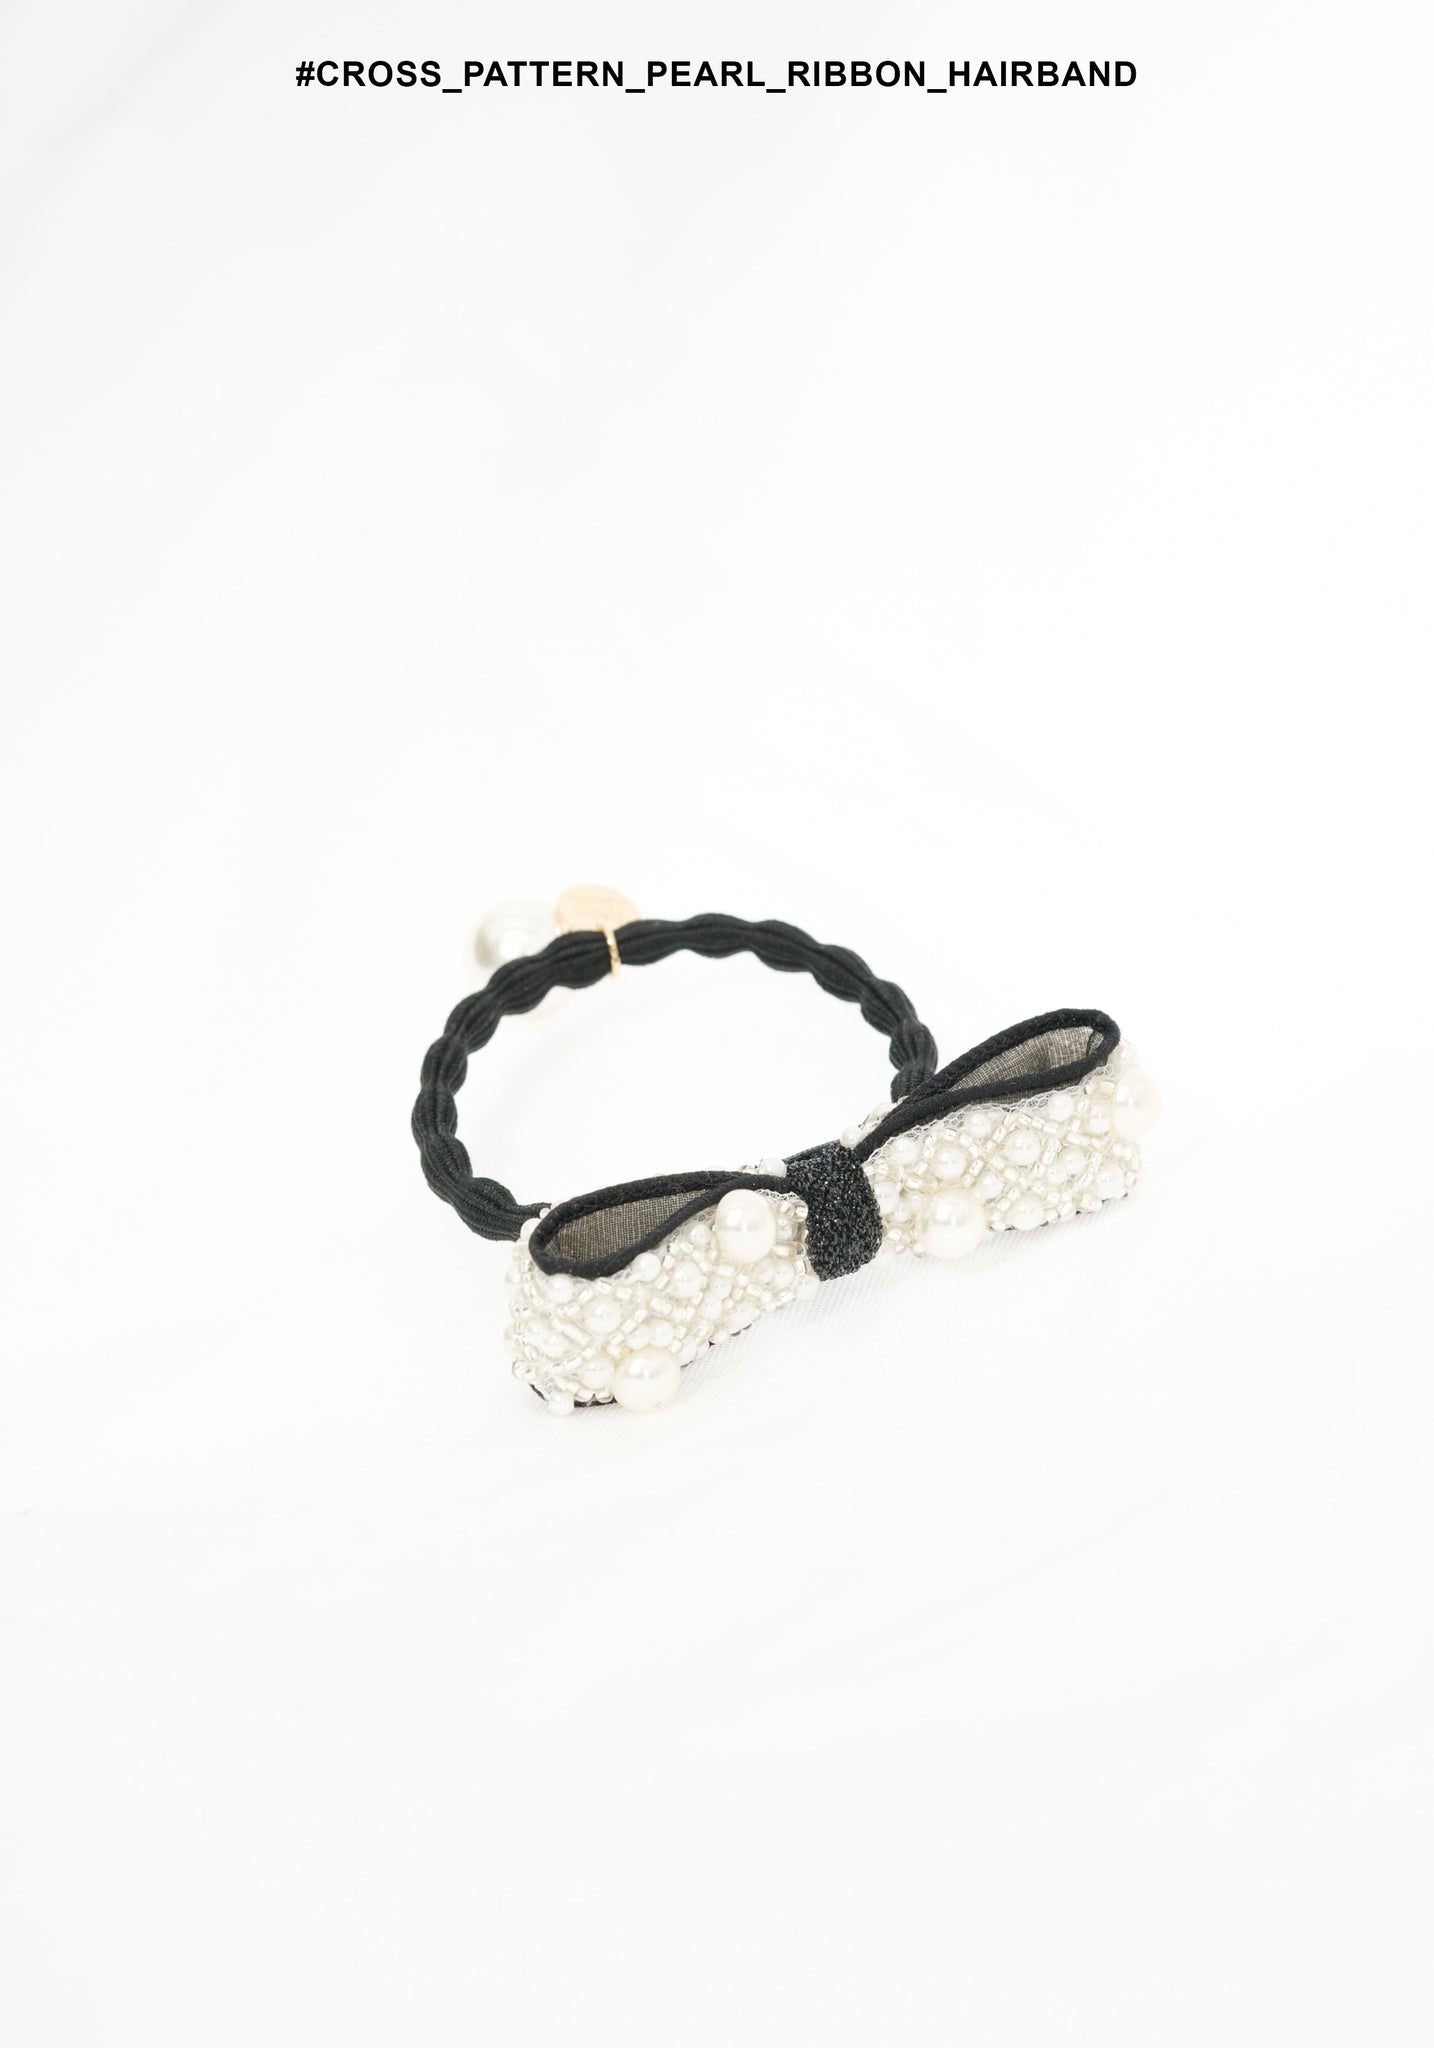 Cross Pattern Pearl Ribbon Hairband - whoami